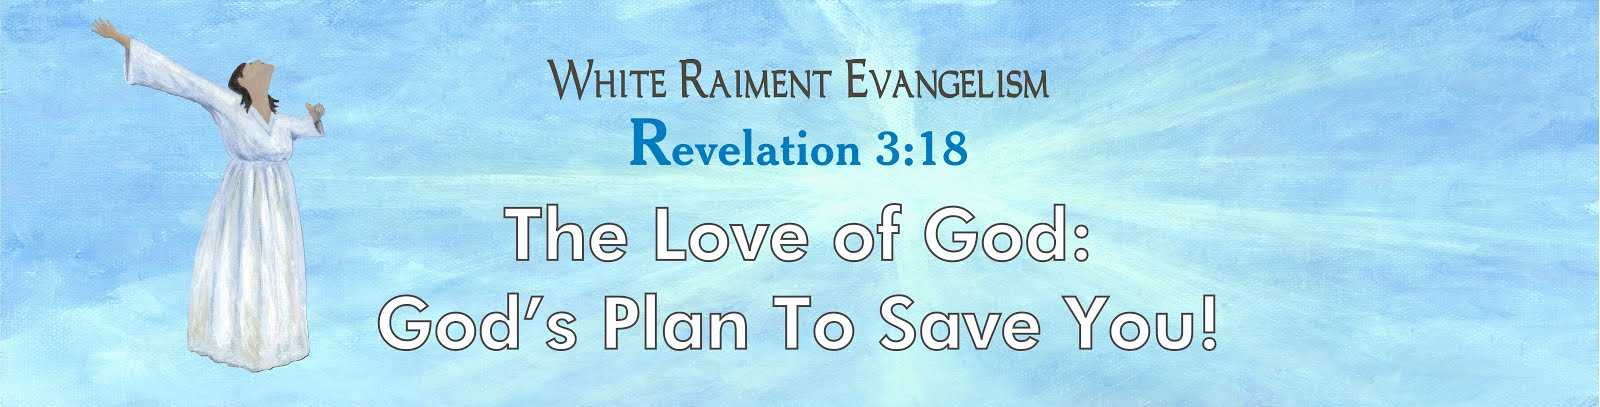 White Raiment Evangelism: The Love of God: God's Plan To Save You!